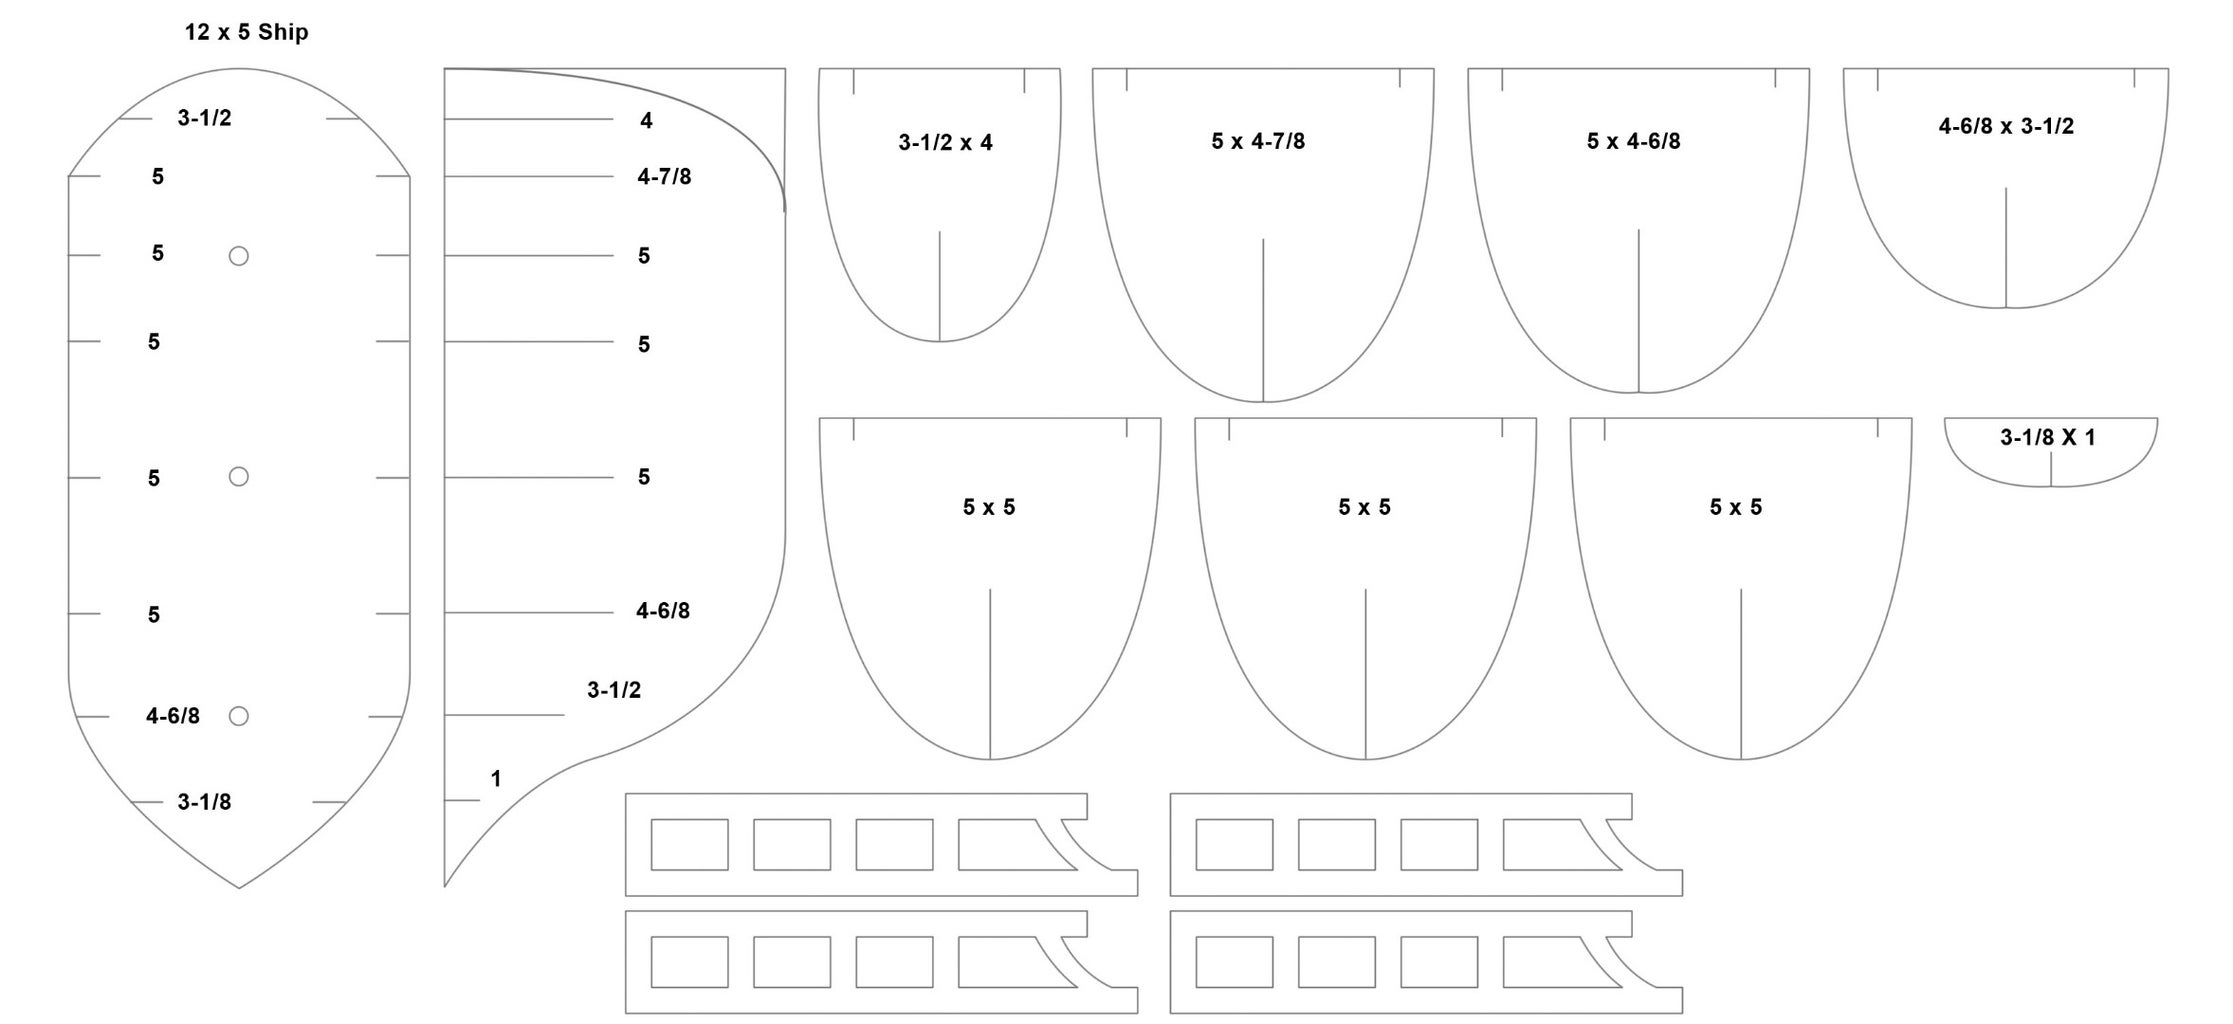 1. Print the Life -size Cardboard Ship Plan or Re-size to Create a Smaller or Bigger Ship